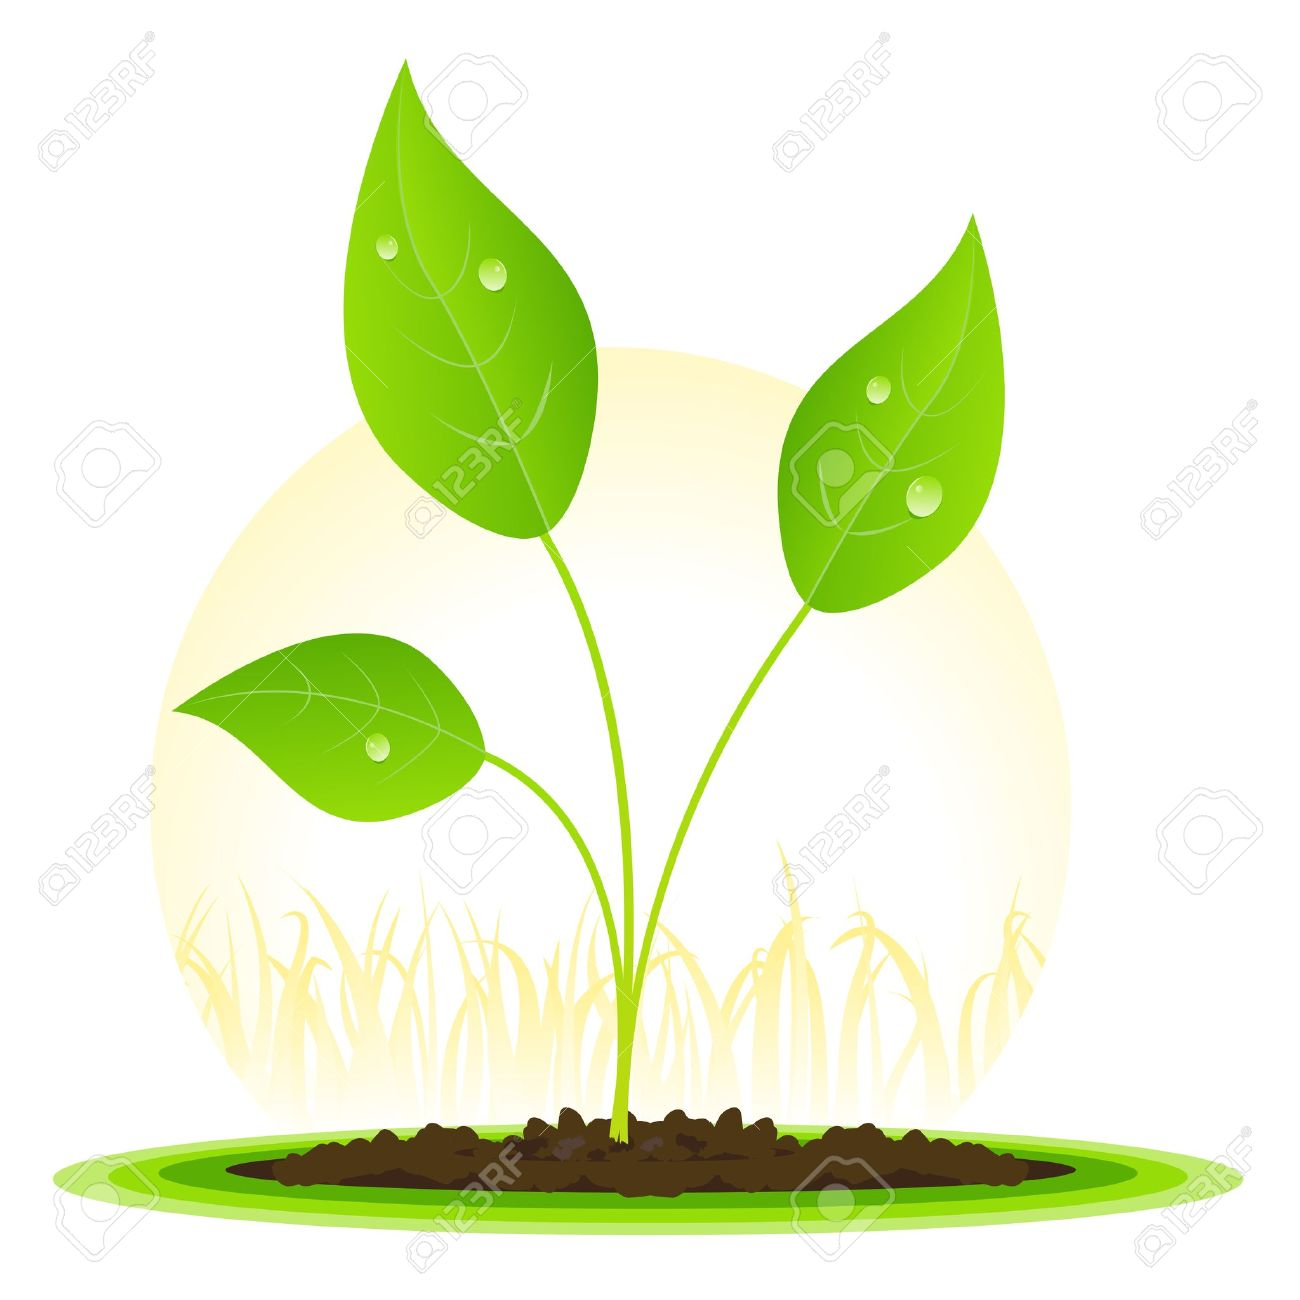 Leaves grow clipart #7